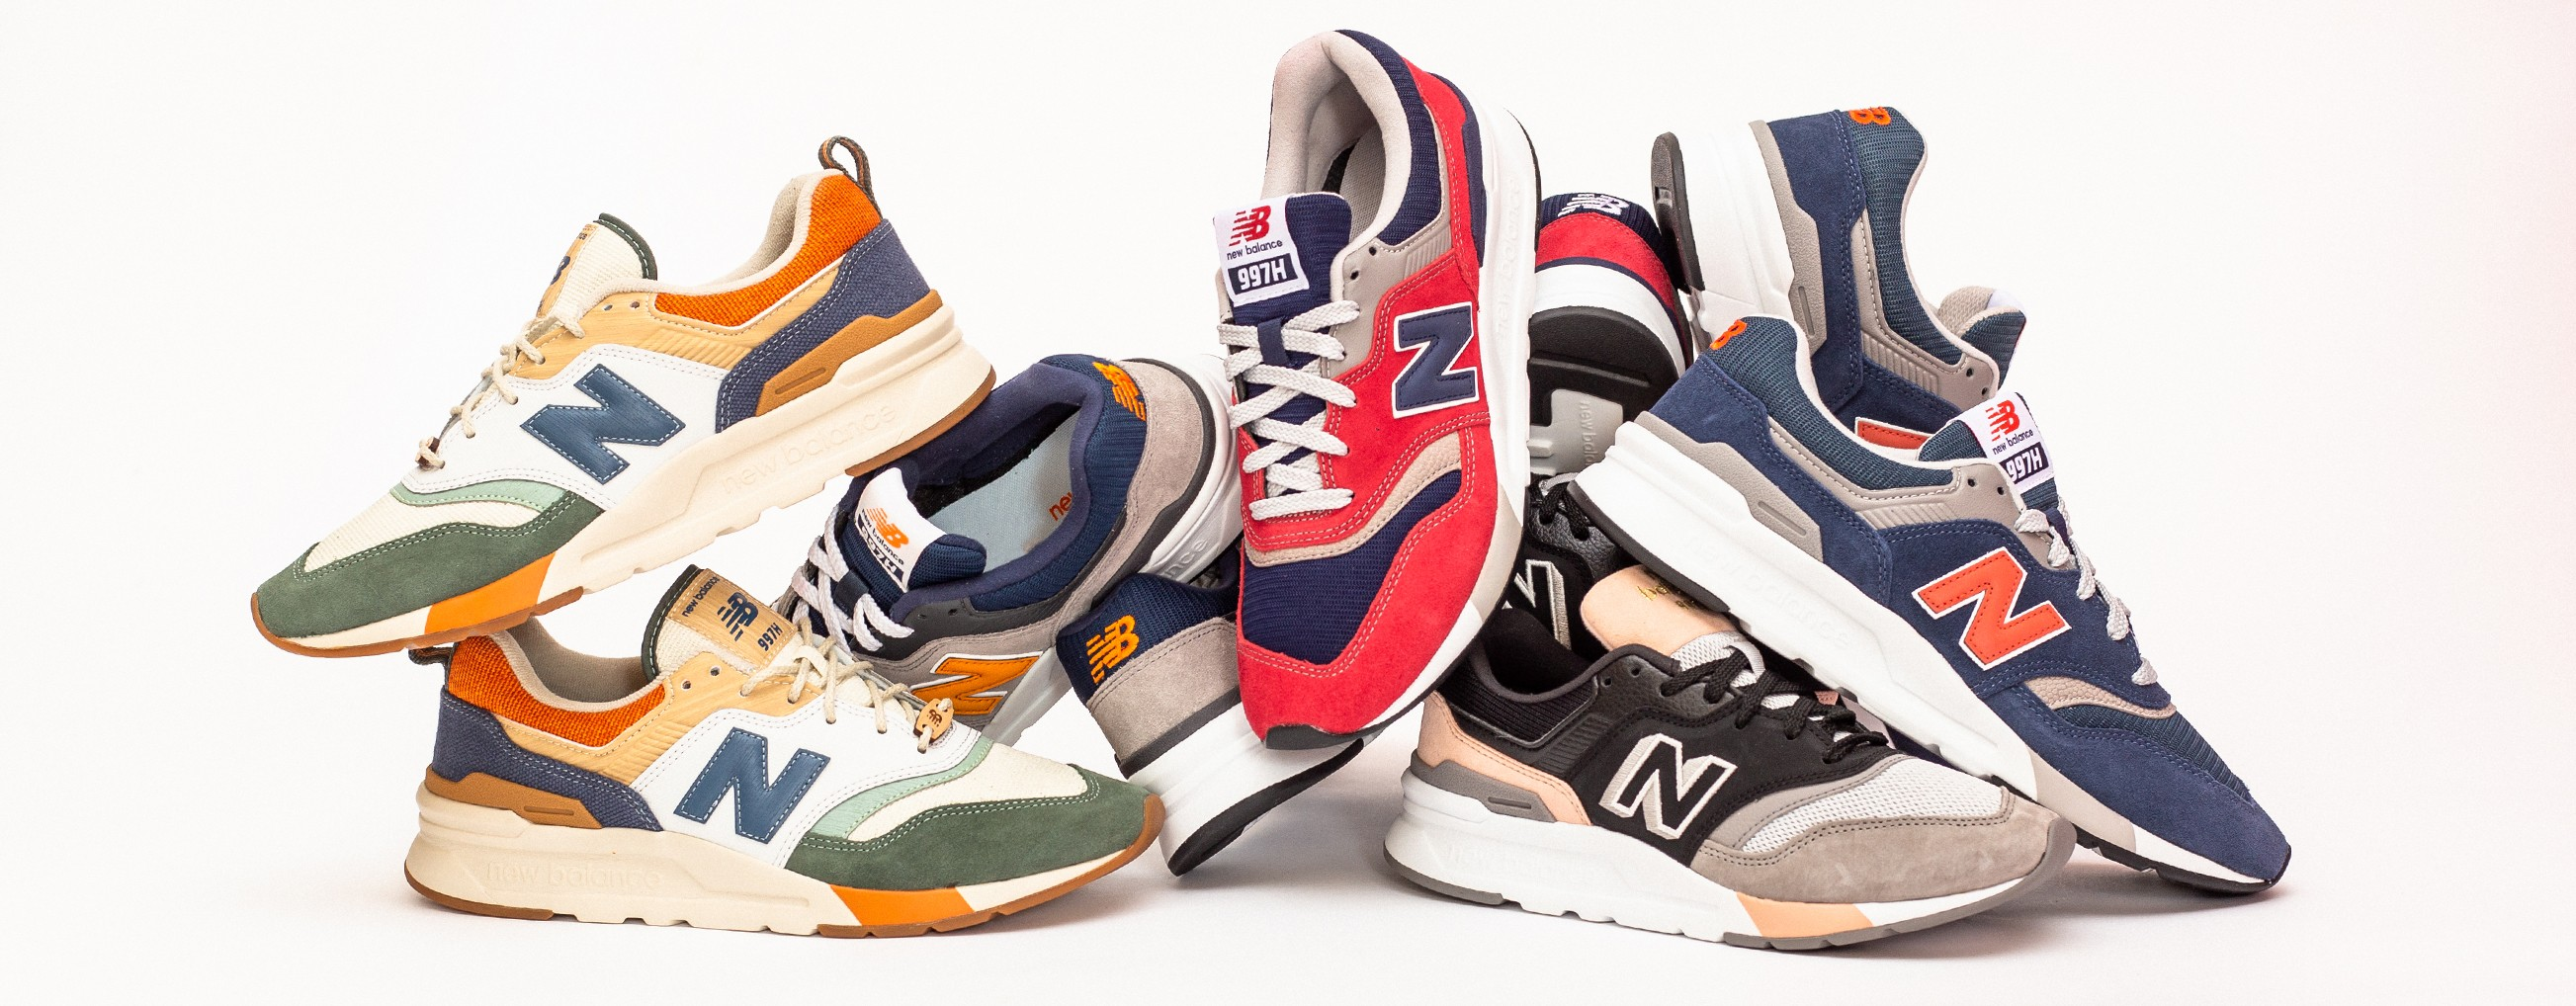 New Balance 997 Collection